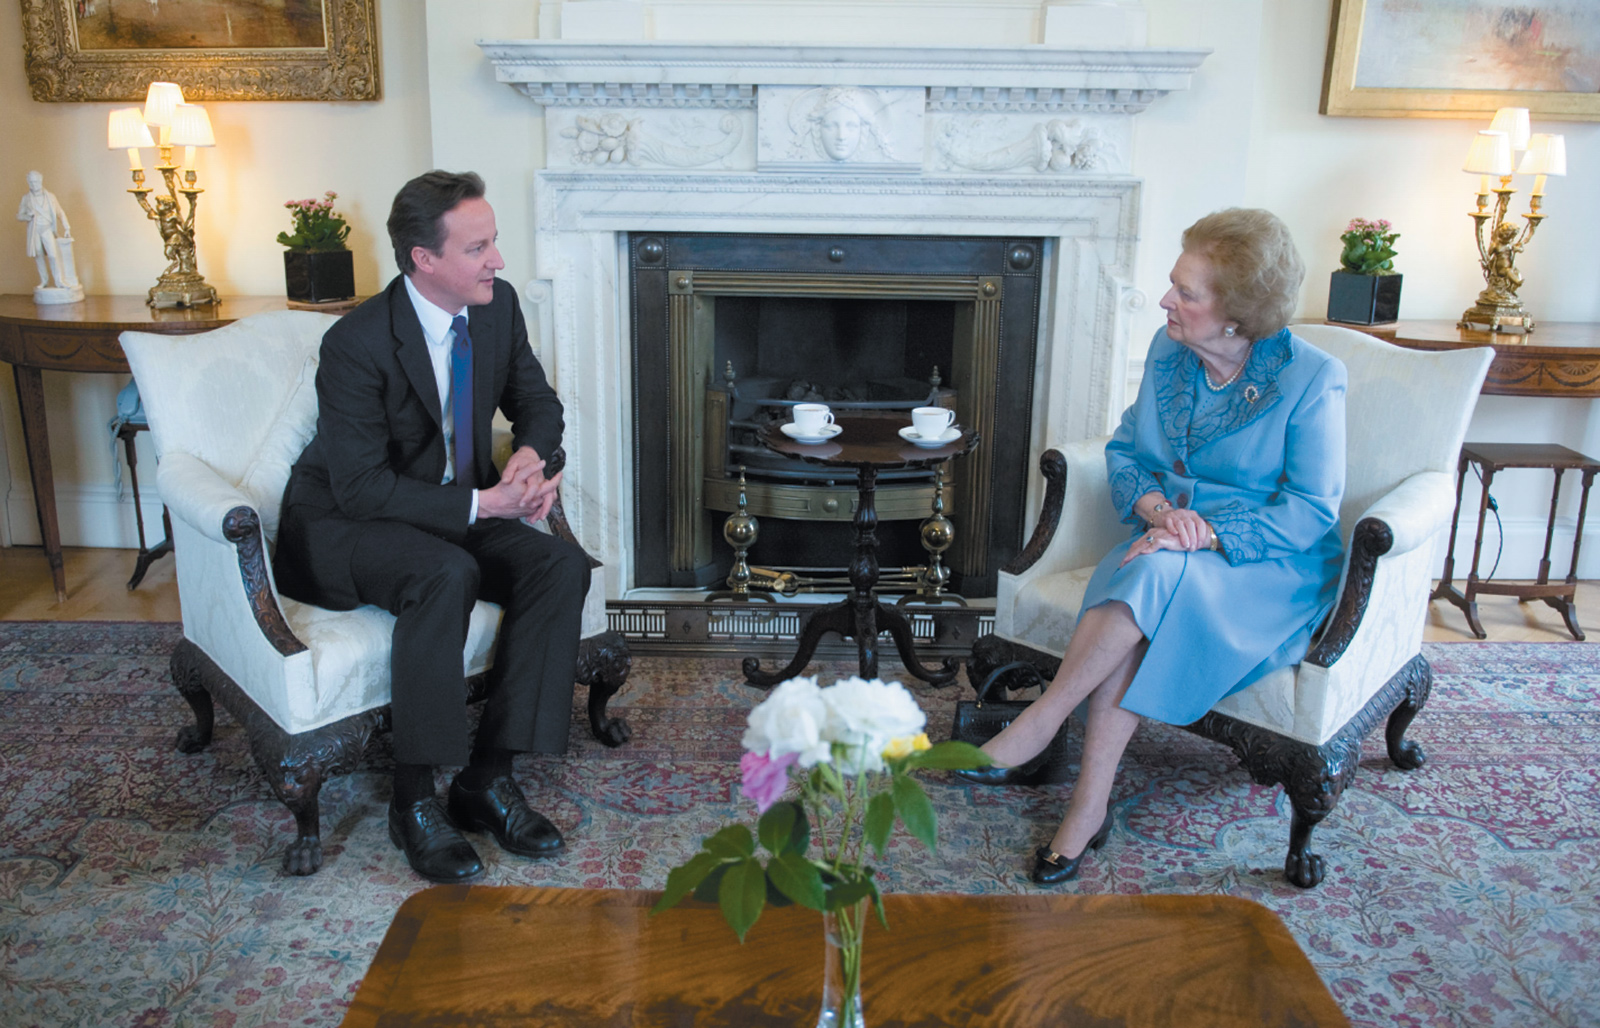 David Cameron and Margaret Thatcher at 10 Downing Street, London, June 2010